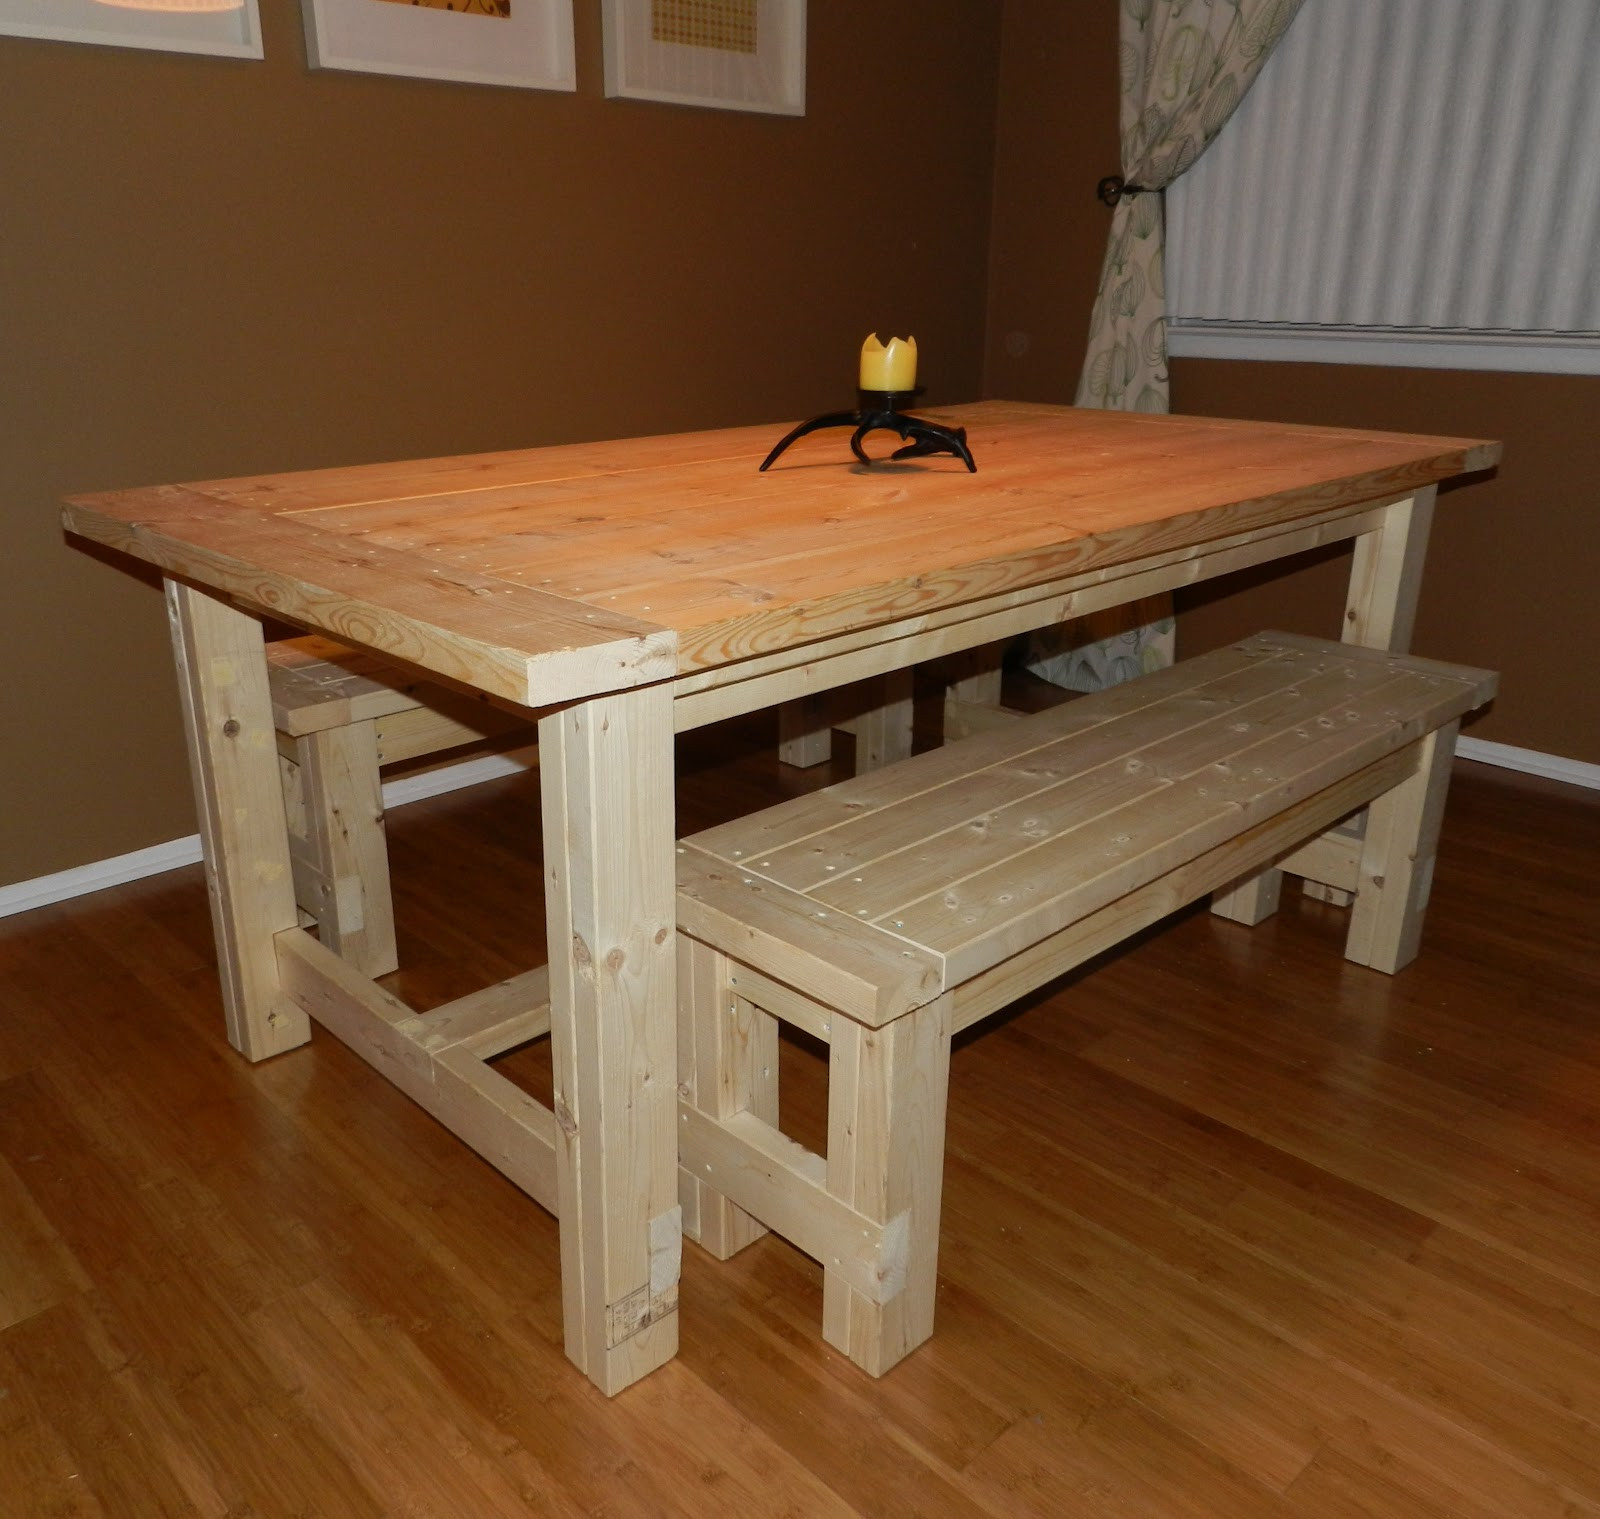 Best ideas about Diy Dining Table . Save or Pin DIY Projects DIY dining table Now.